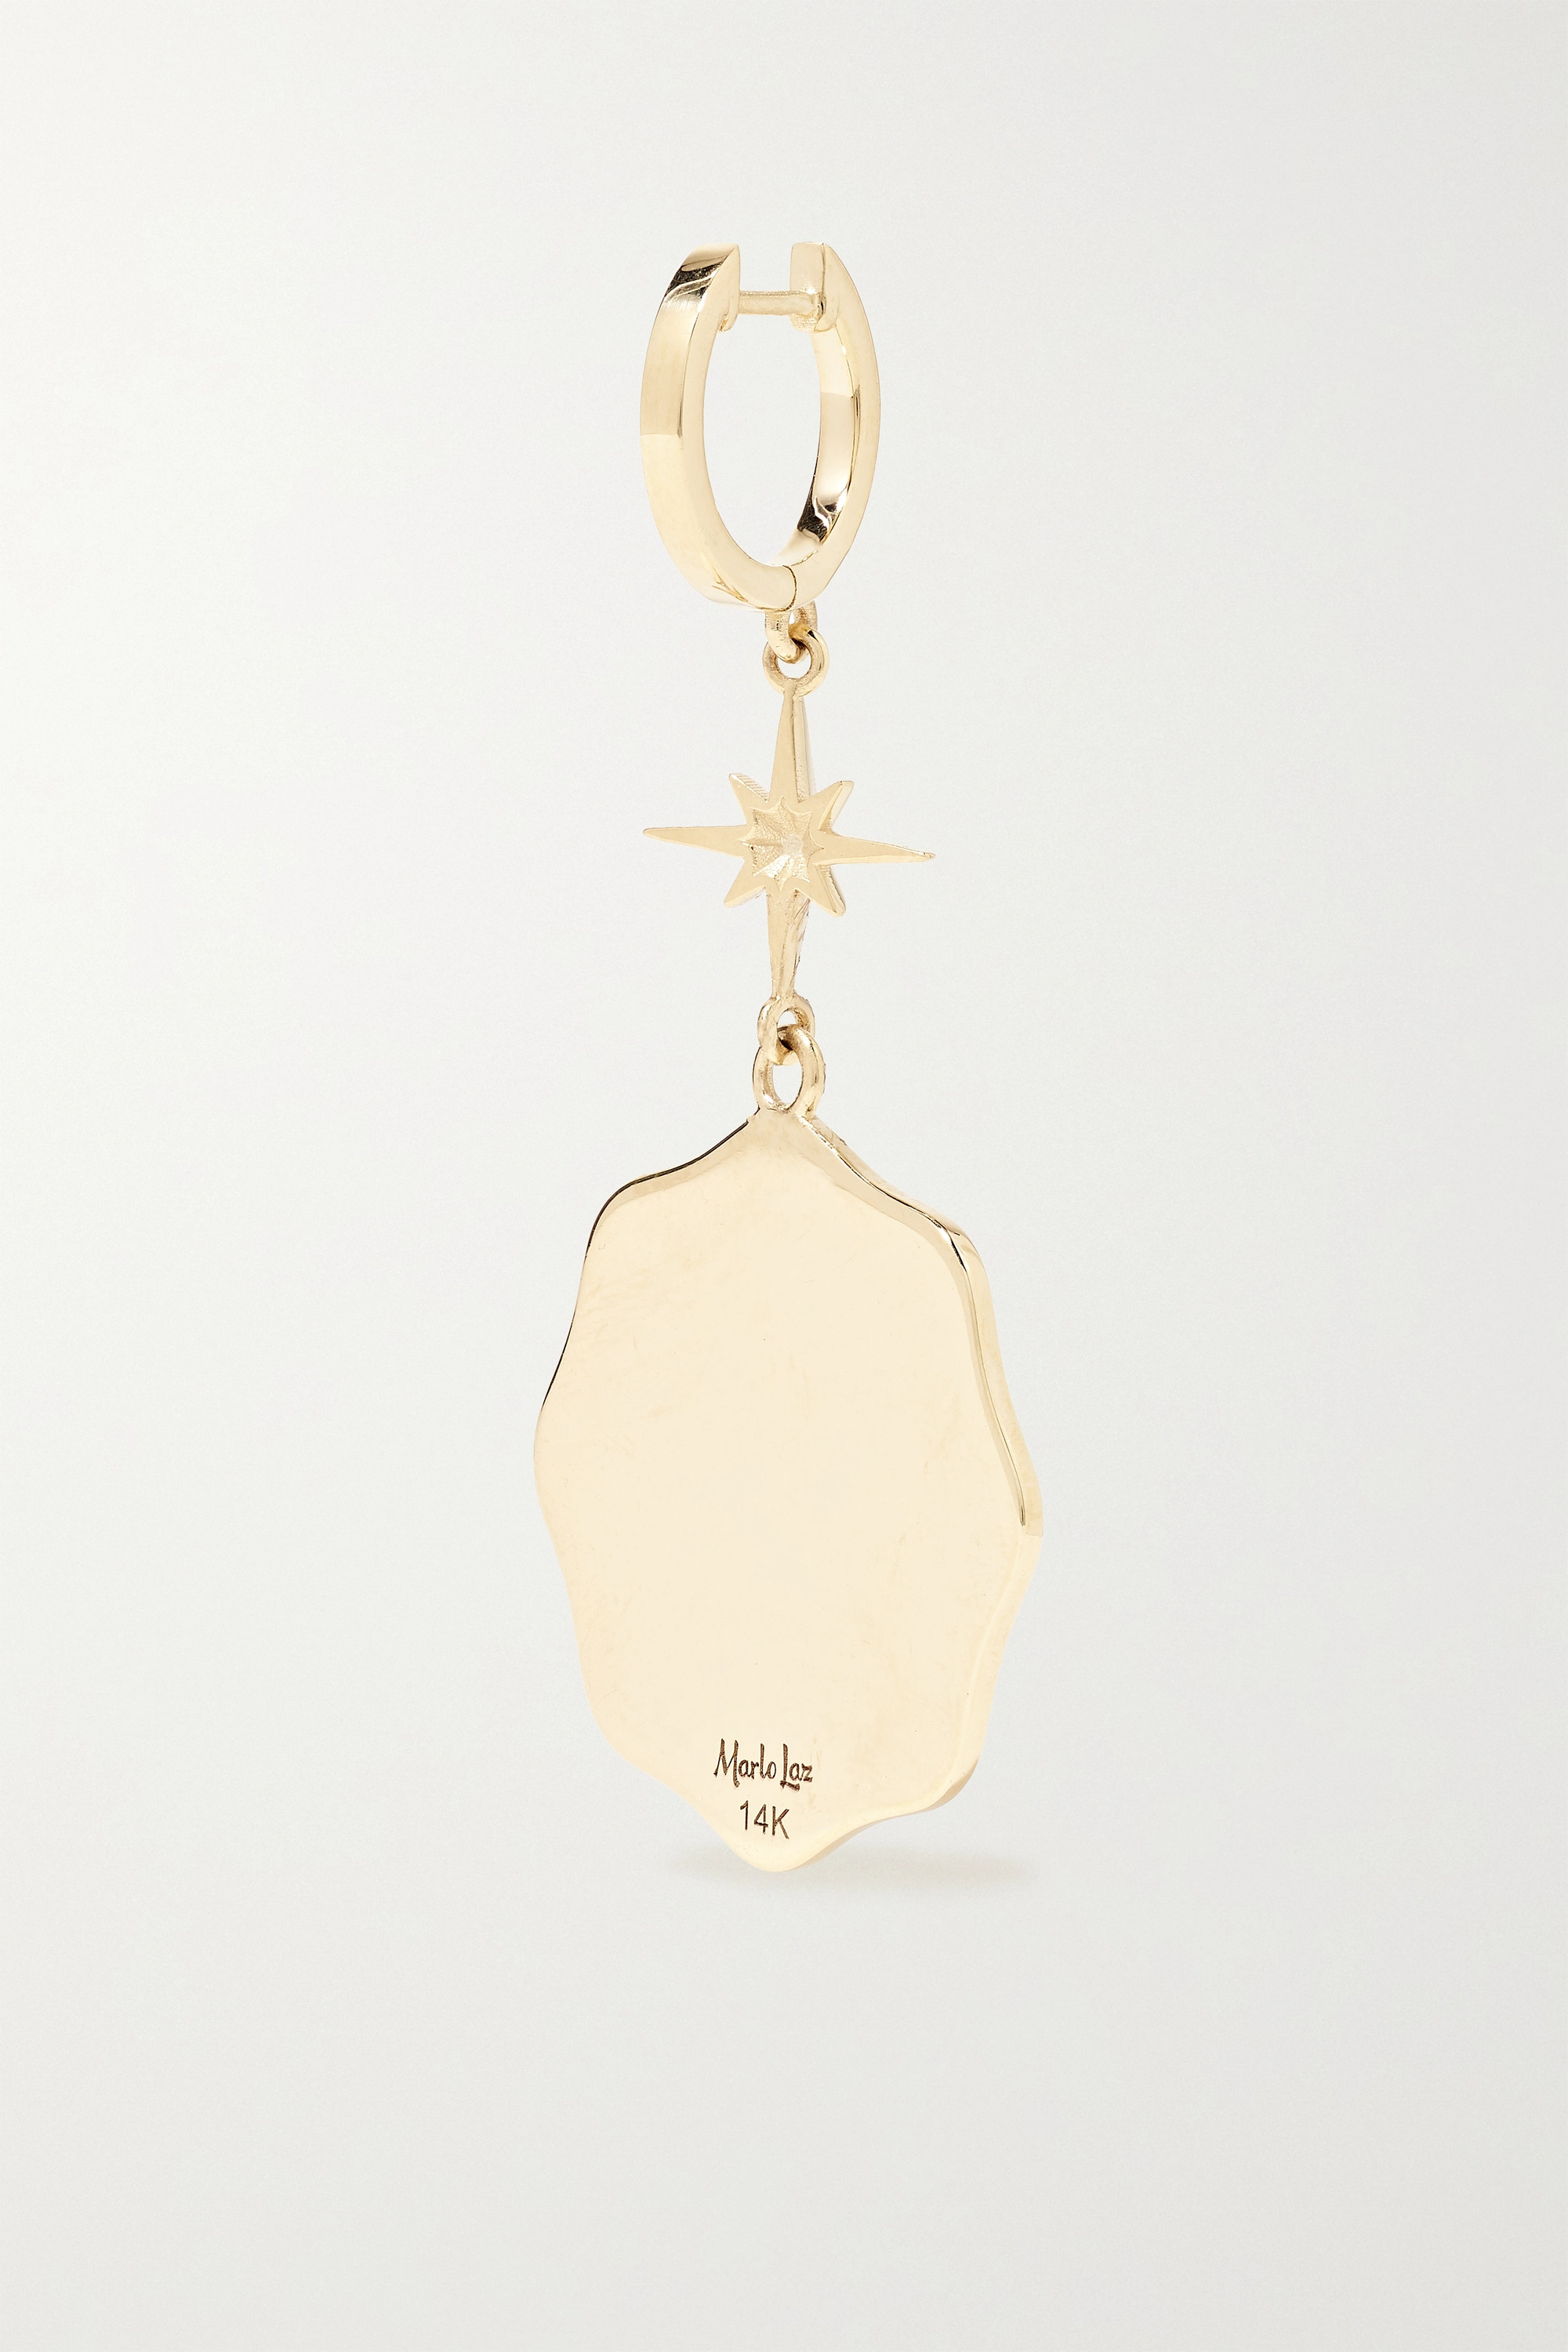 Marlo Laz Porte Bonheur Coin 14-karat gold, diamond and pearl earrings